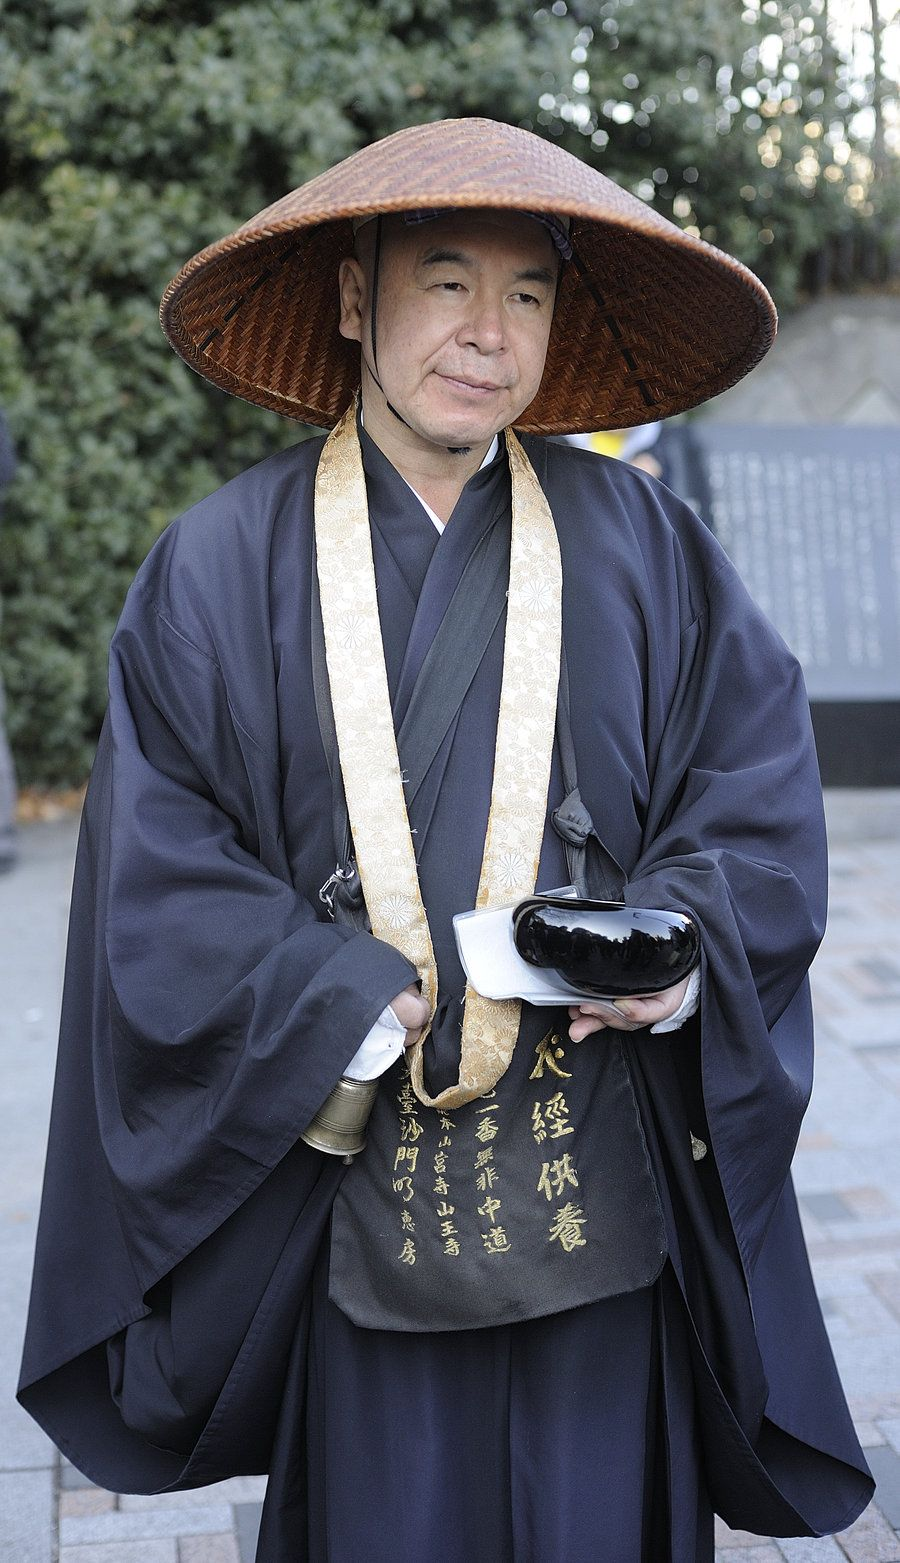 shinto priest tokyo japan world cultures